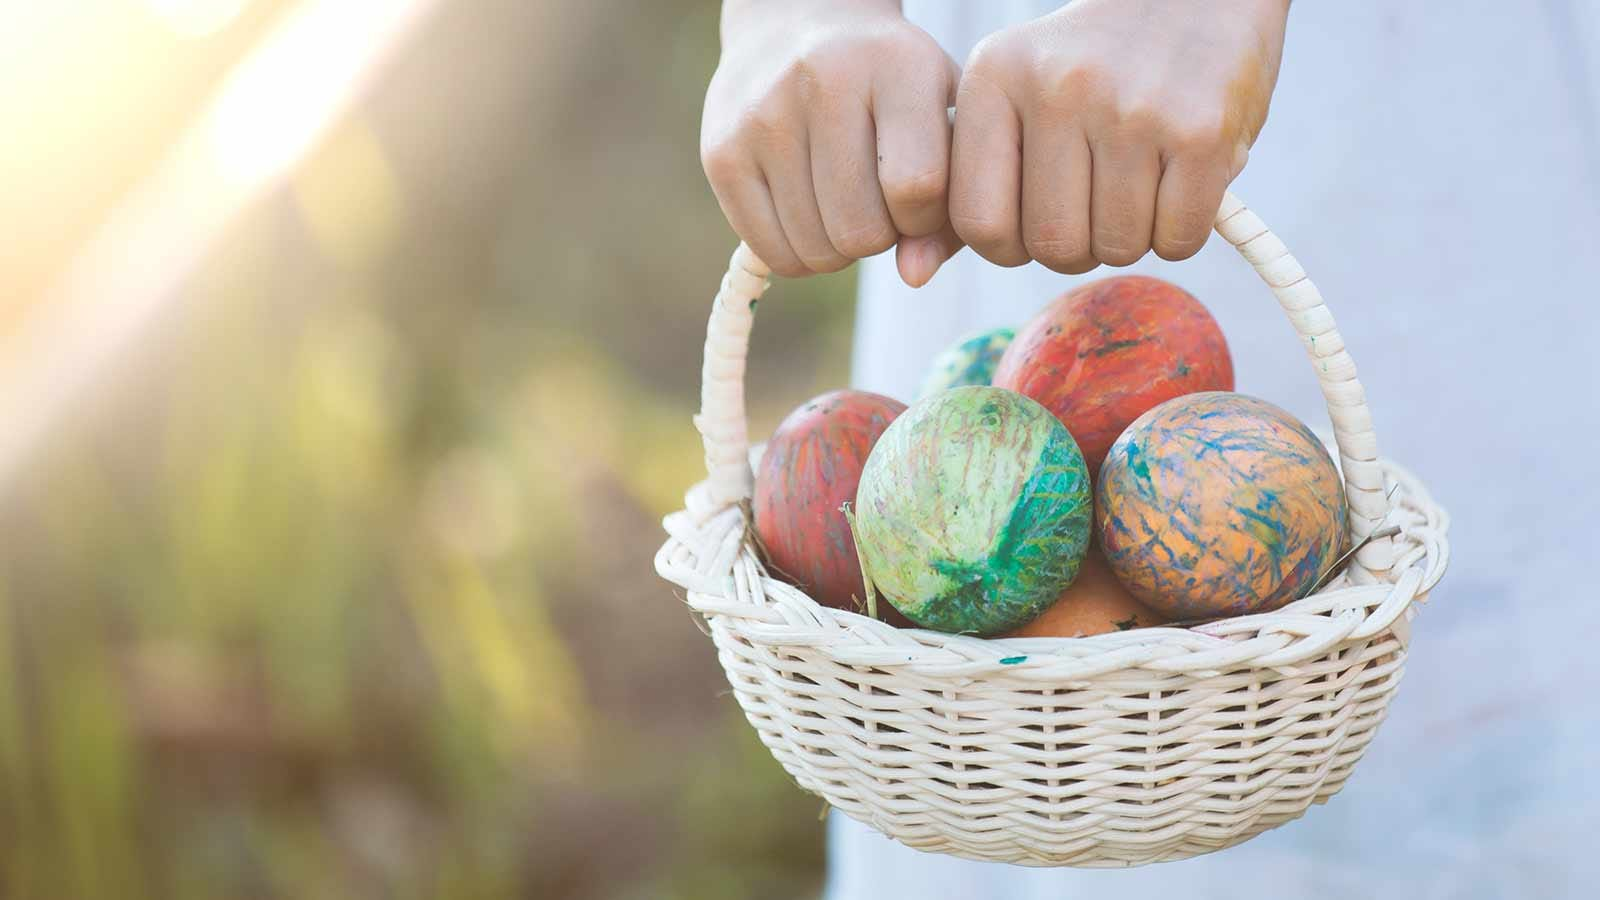 Hands holding a white basket of dyed Easter eggs.